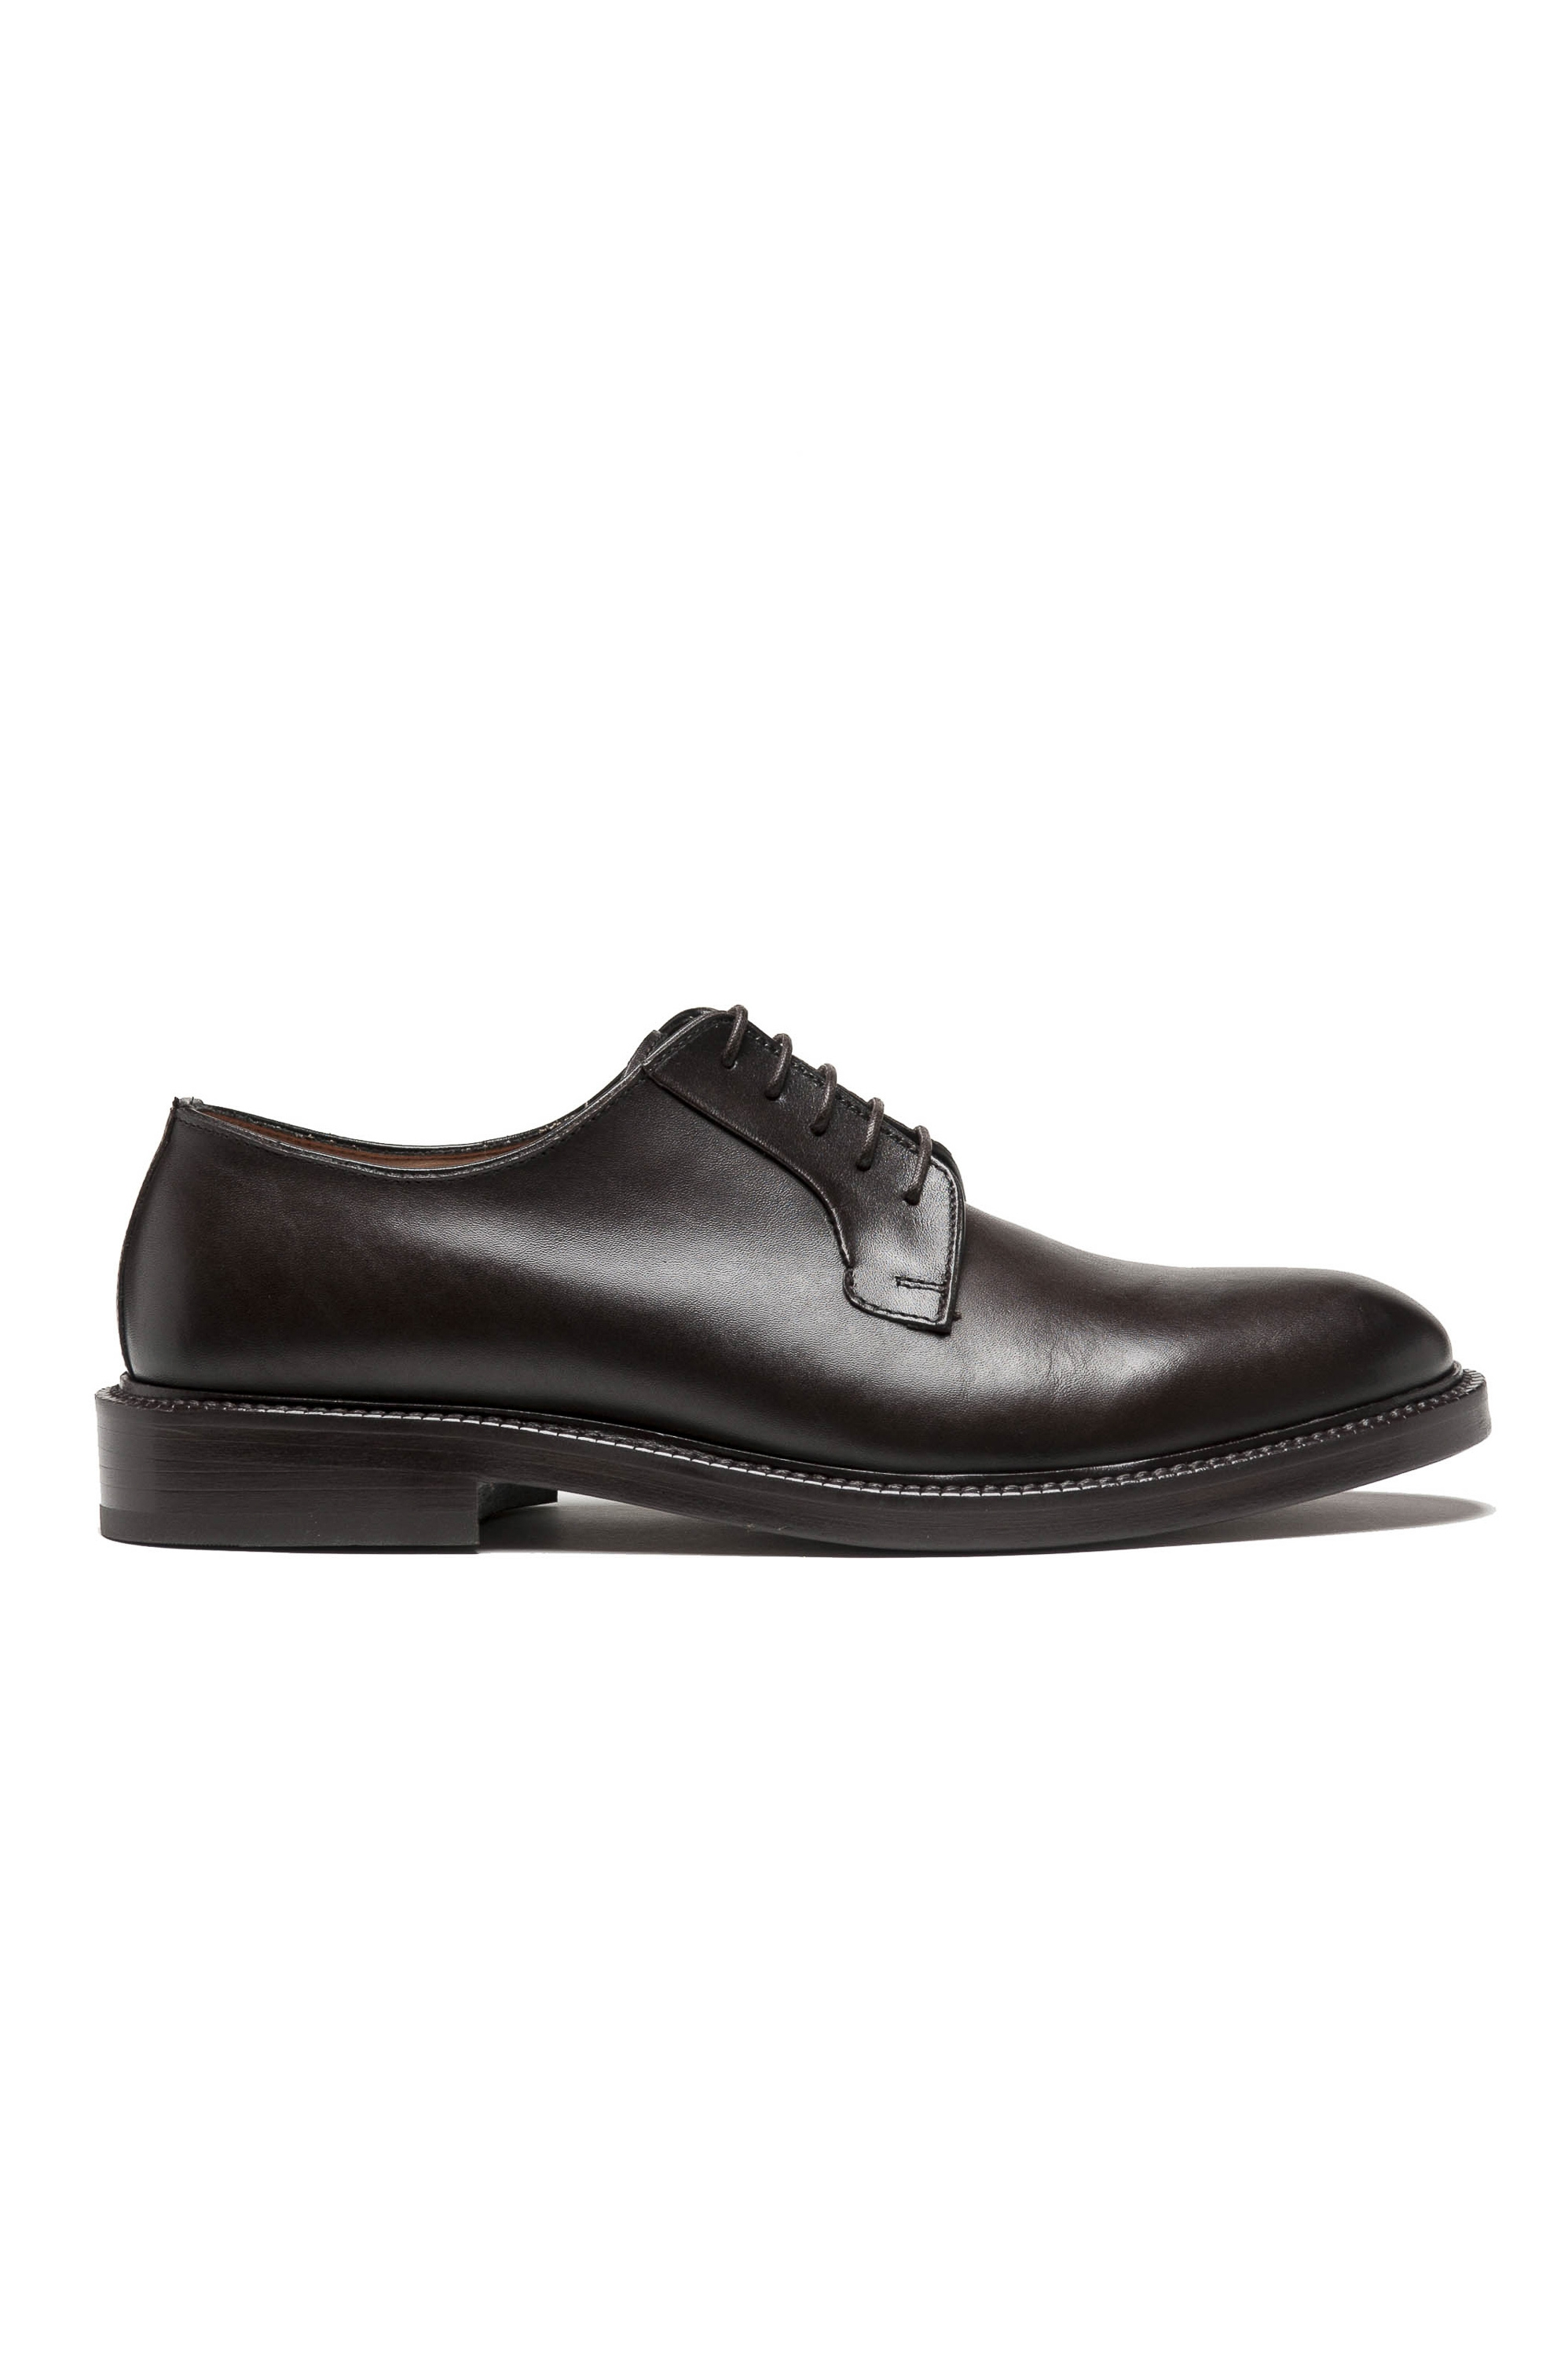 SBU 03199_2021SS Brown lace-up plain calfskin derbies with leather sole 01